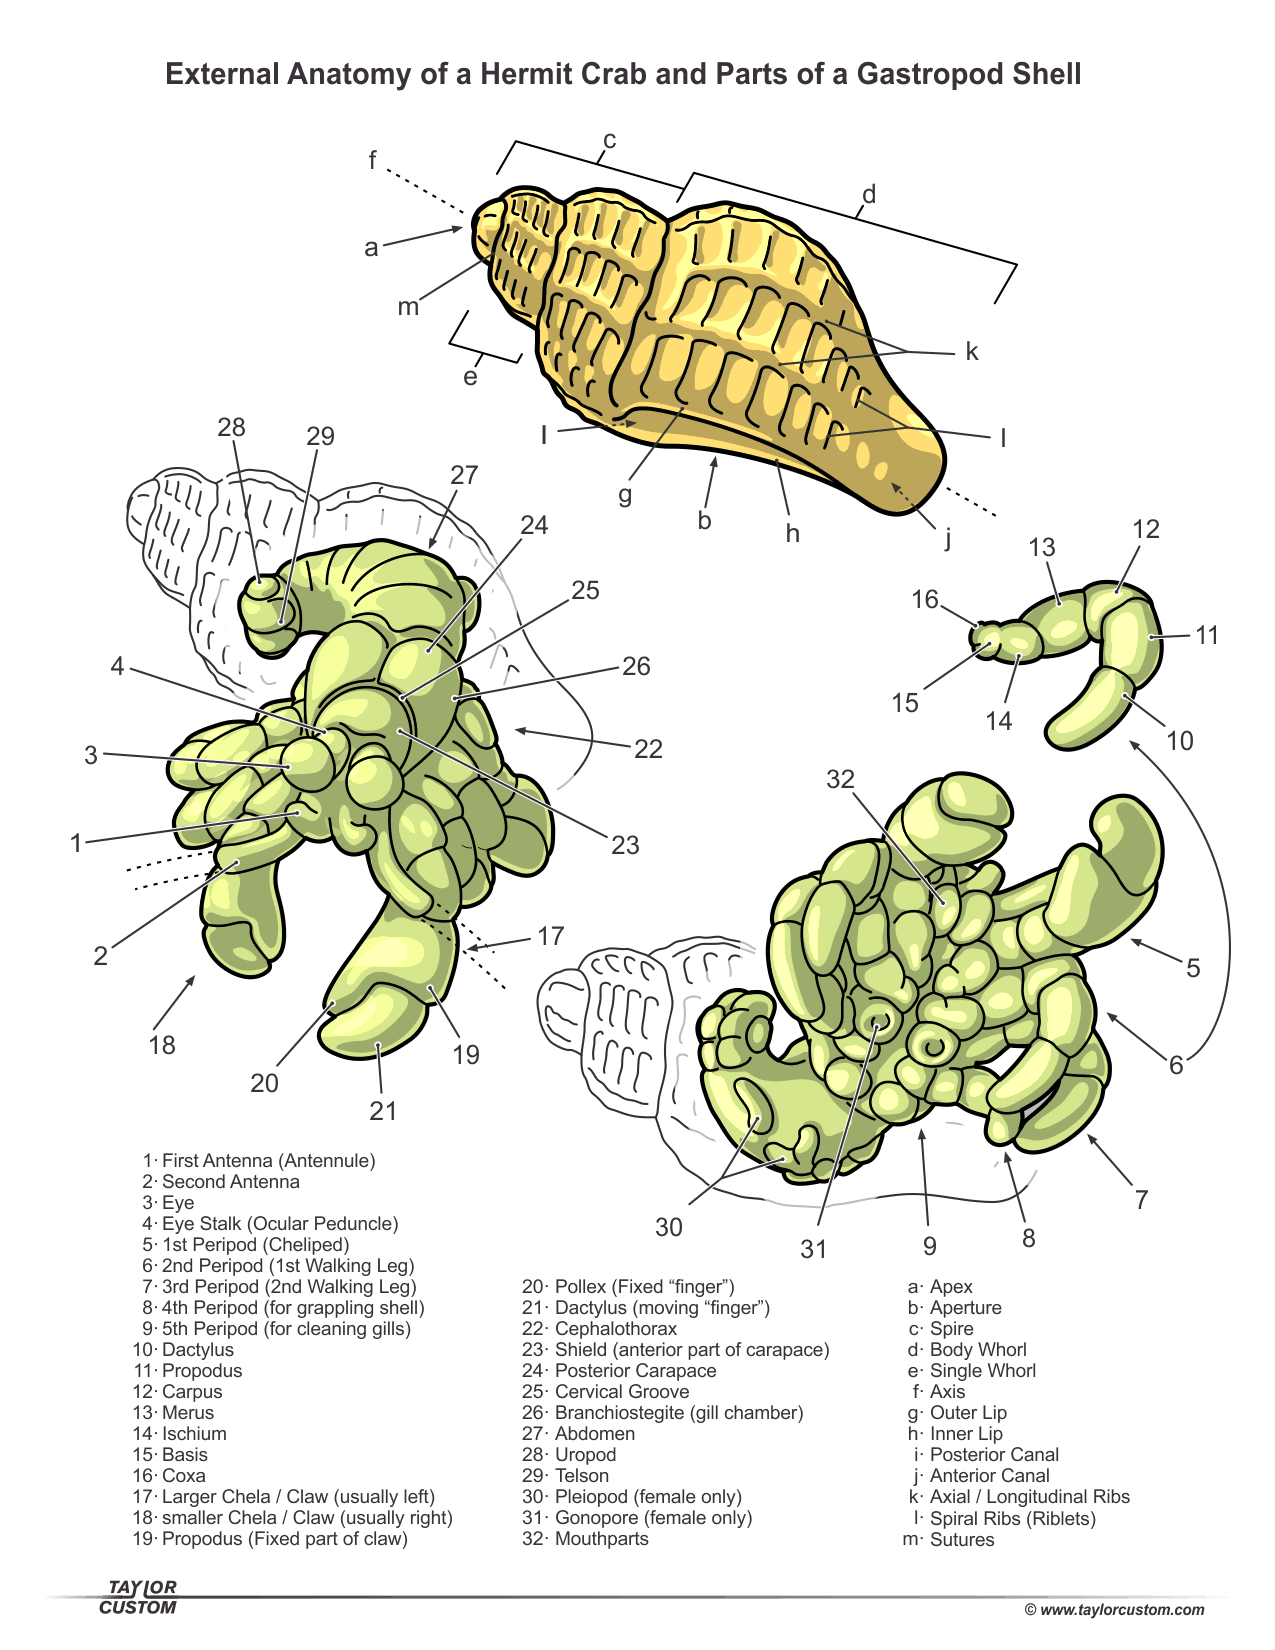 diagram hermit crab taylorcustom diagrams and documents